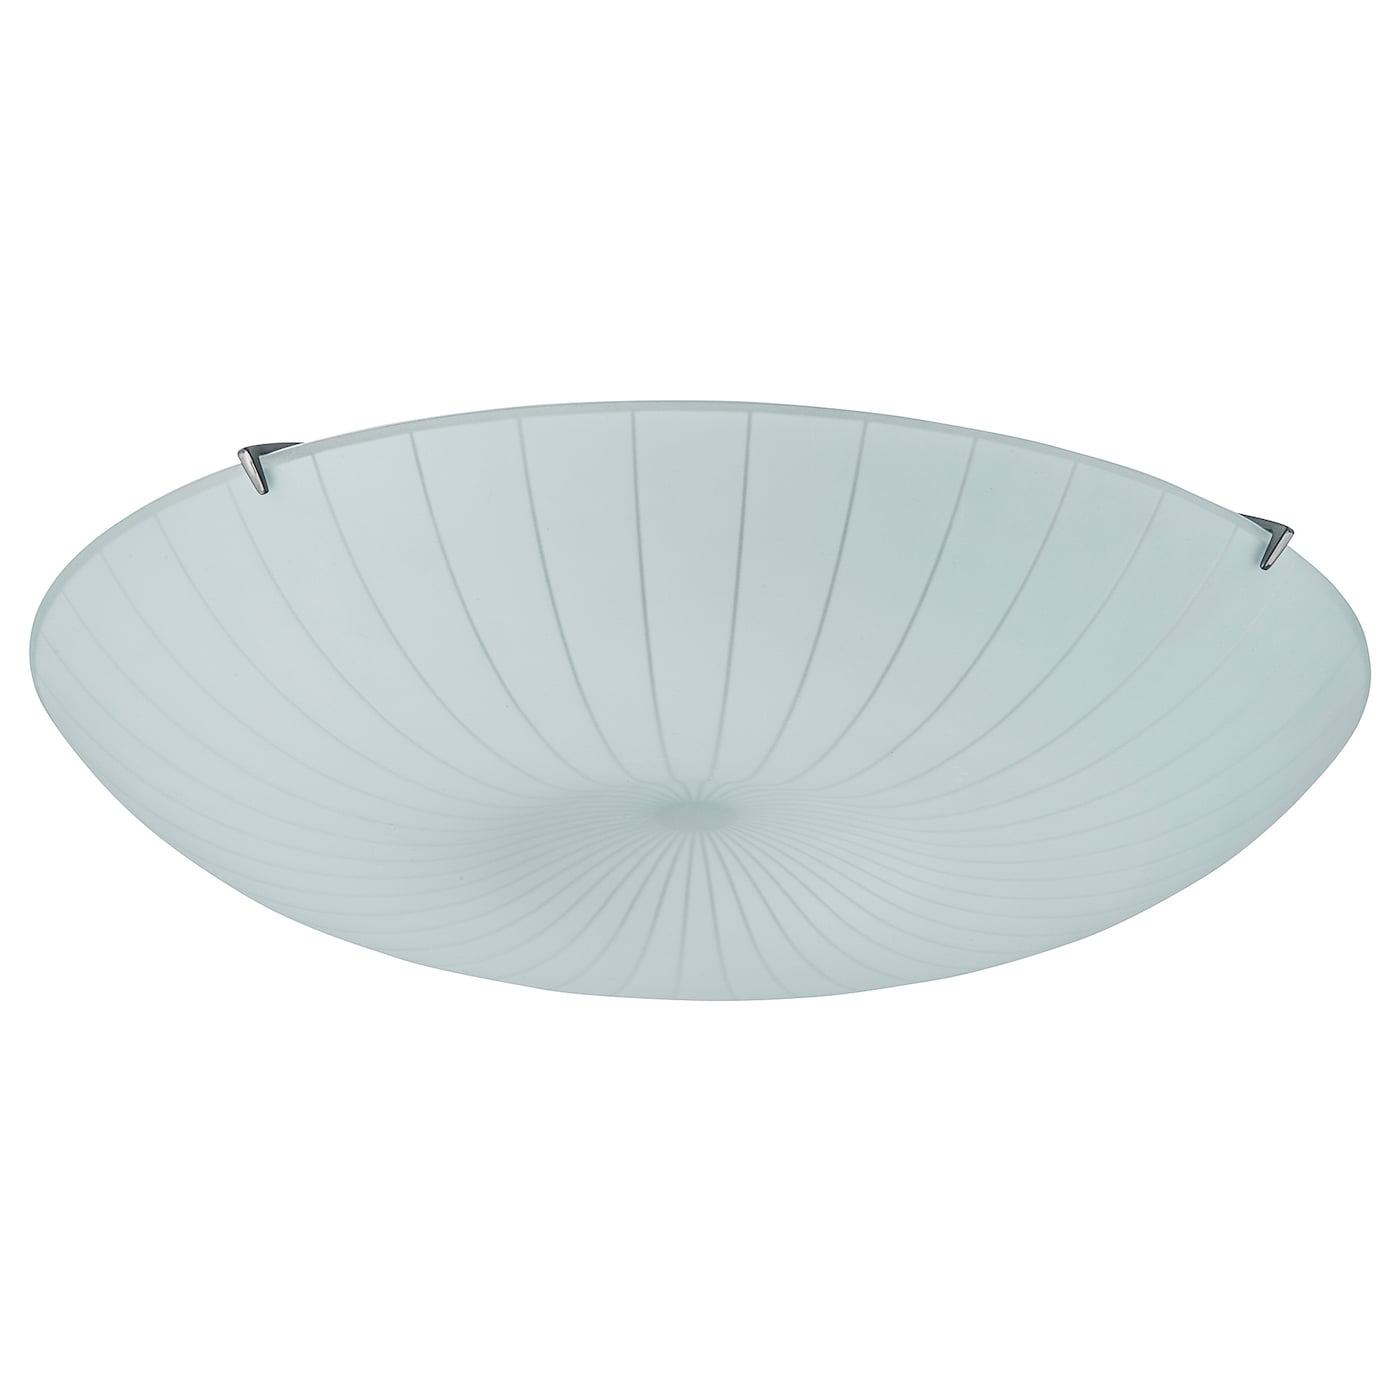 lights maskros us ps ikea catalog ceiling lamp products en pendant